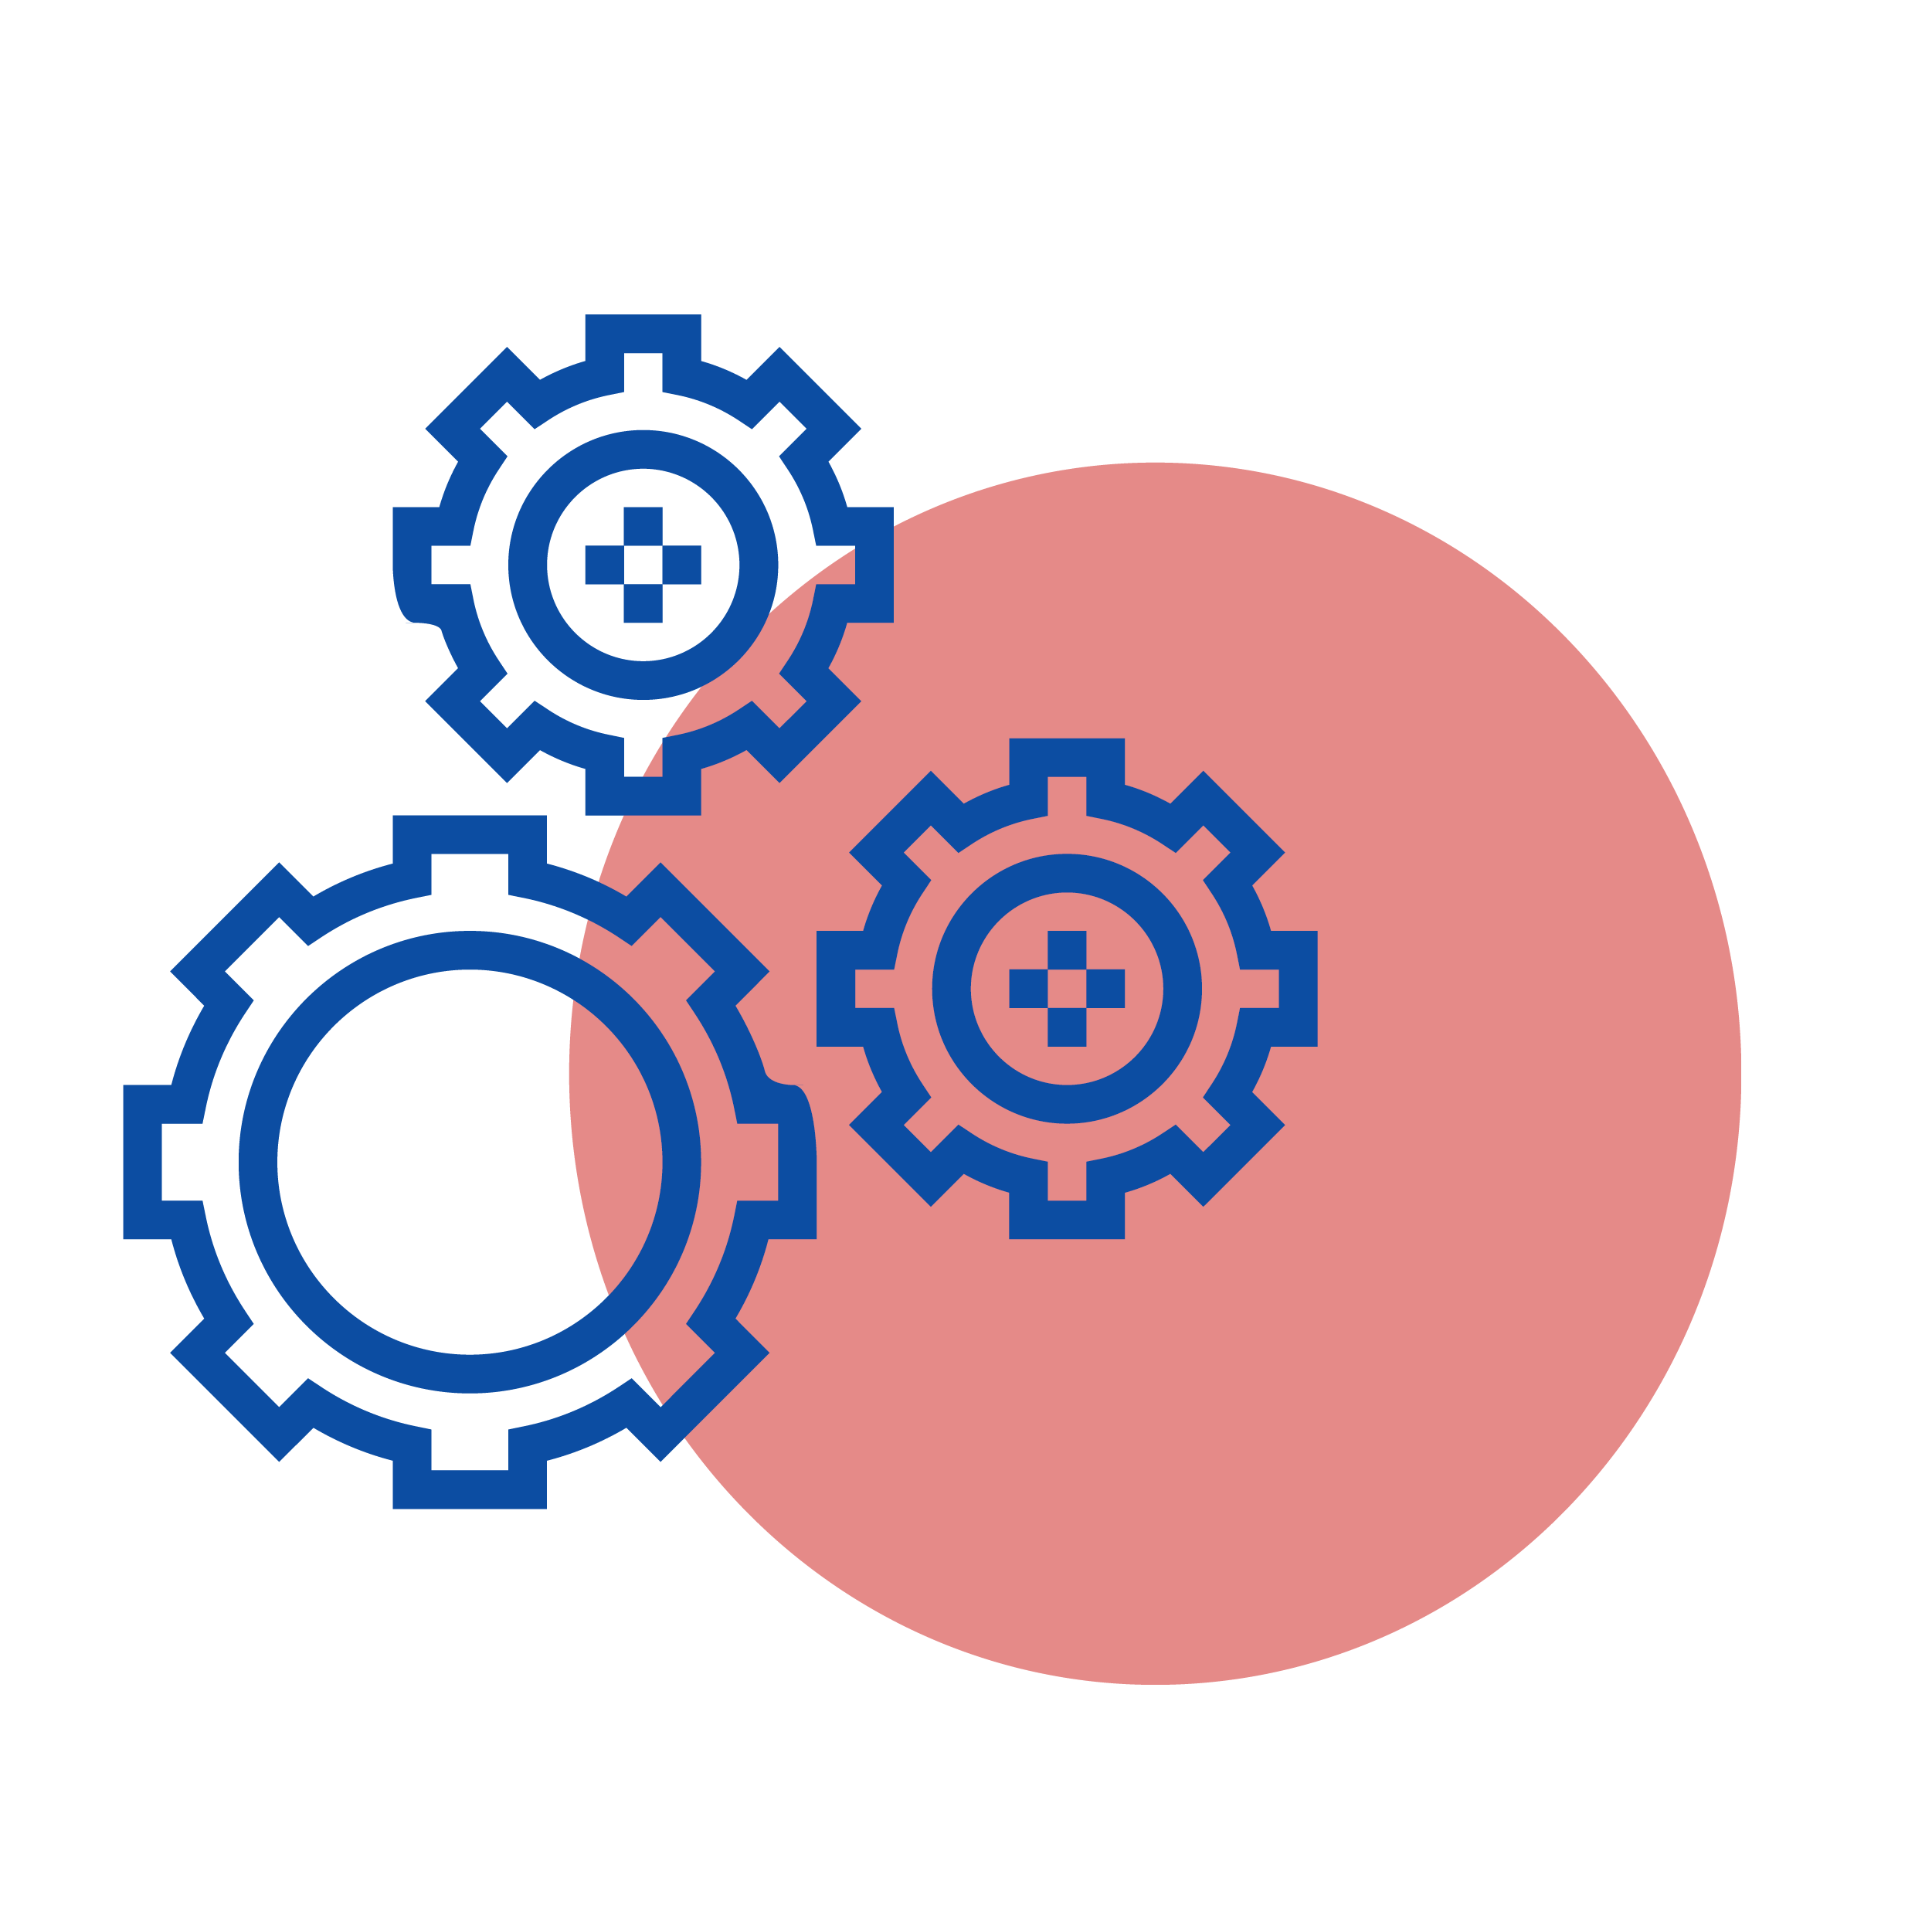 Improved IT systems icon